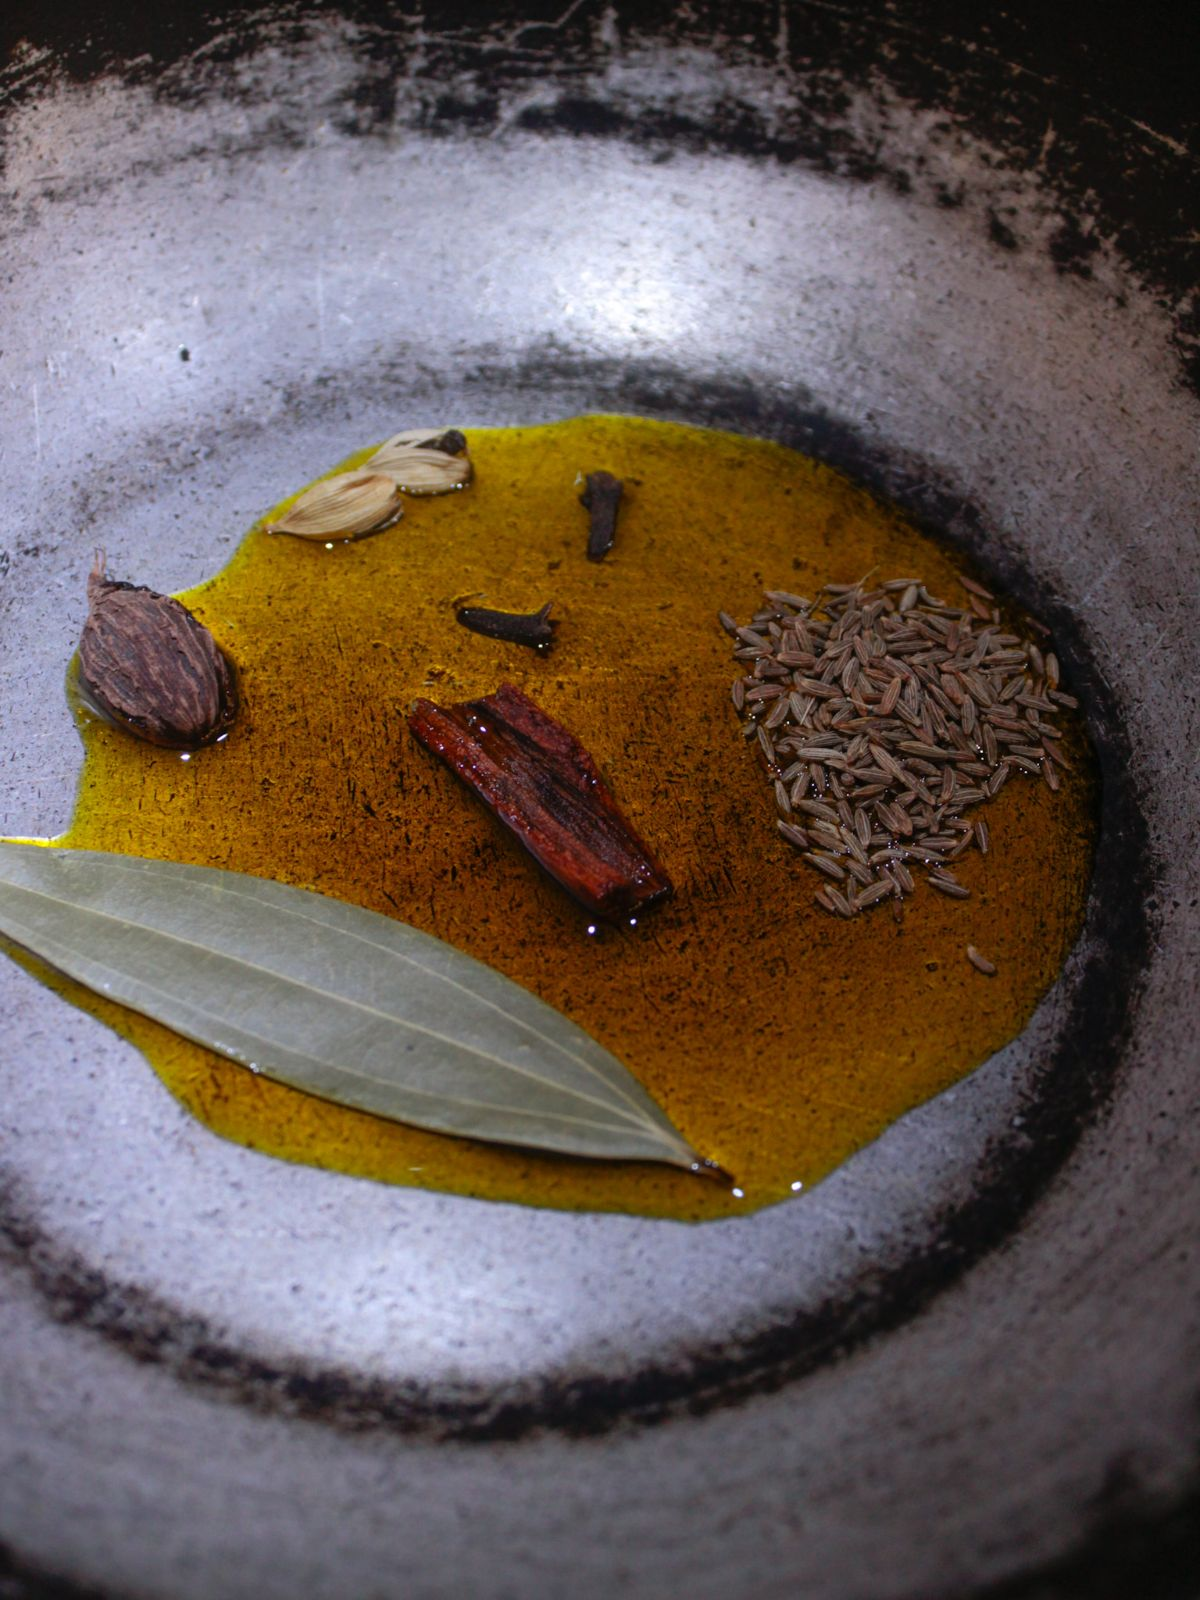 Bay leaf, cinnamon stick, and seed pods in oil in skillet